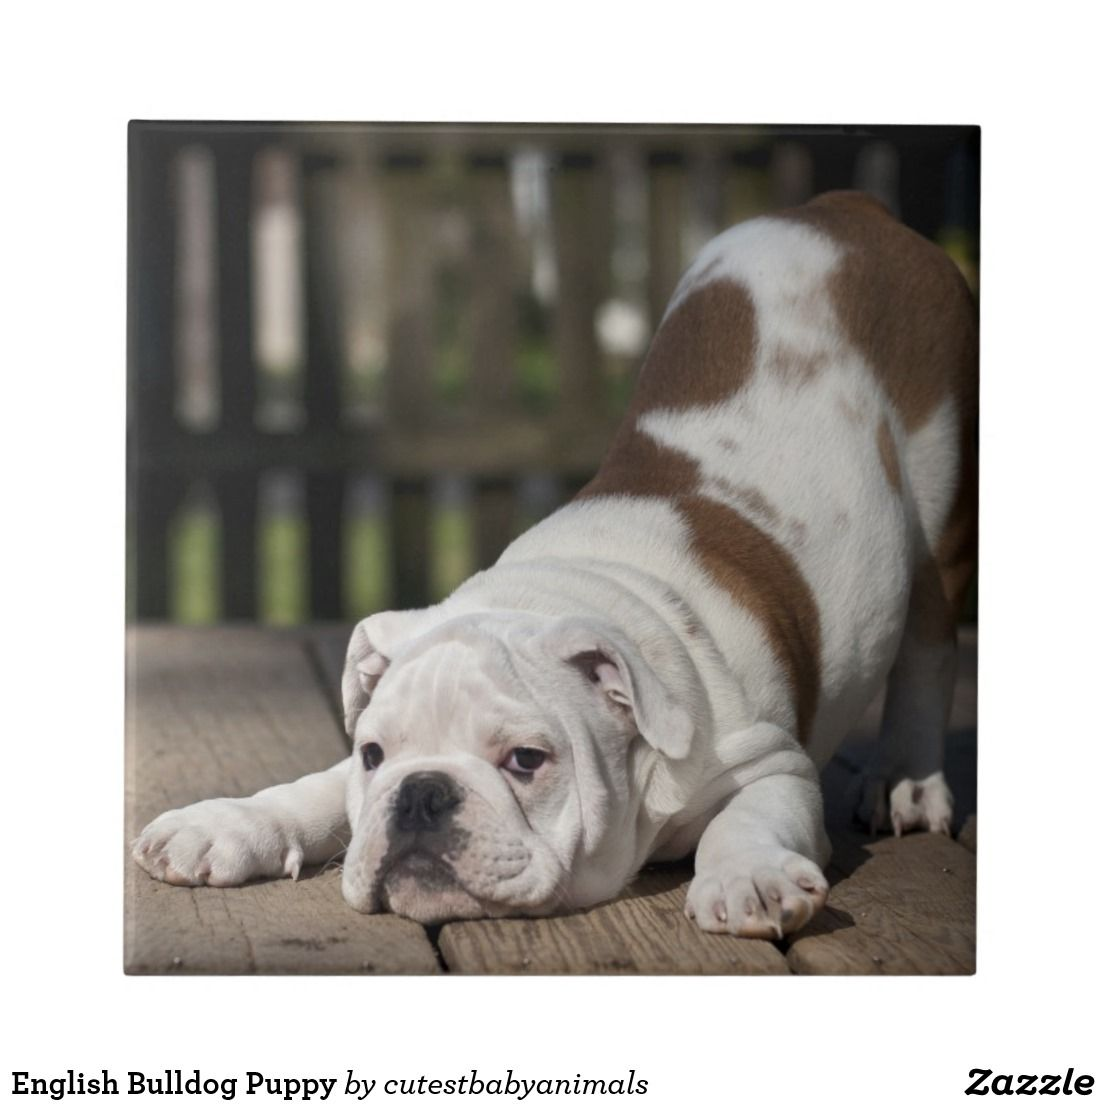 English Bulldog Puppy Tile Zazzle Com Bulldog Puppies Baby